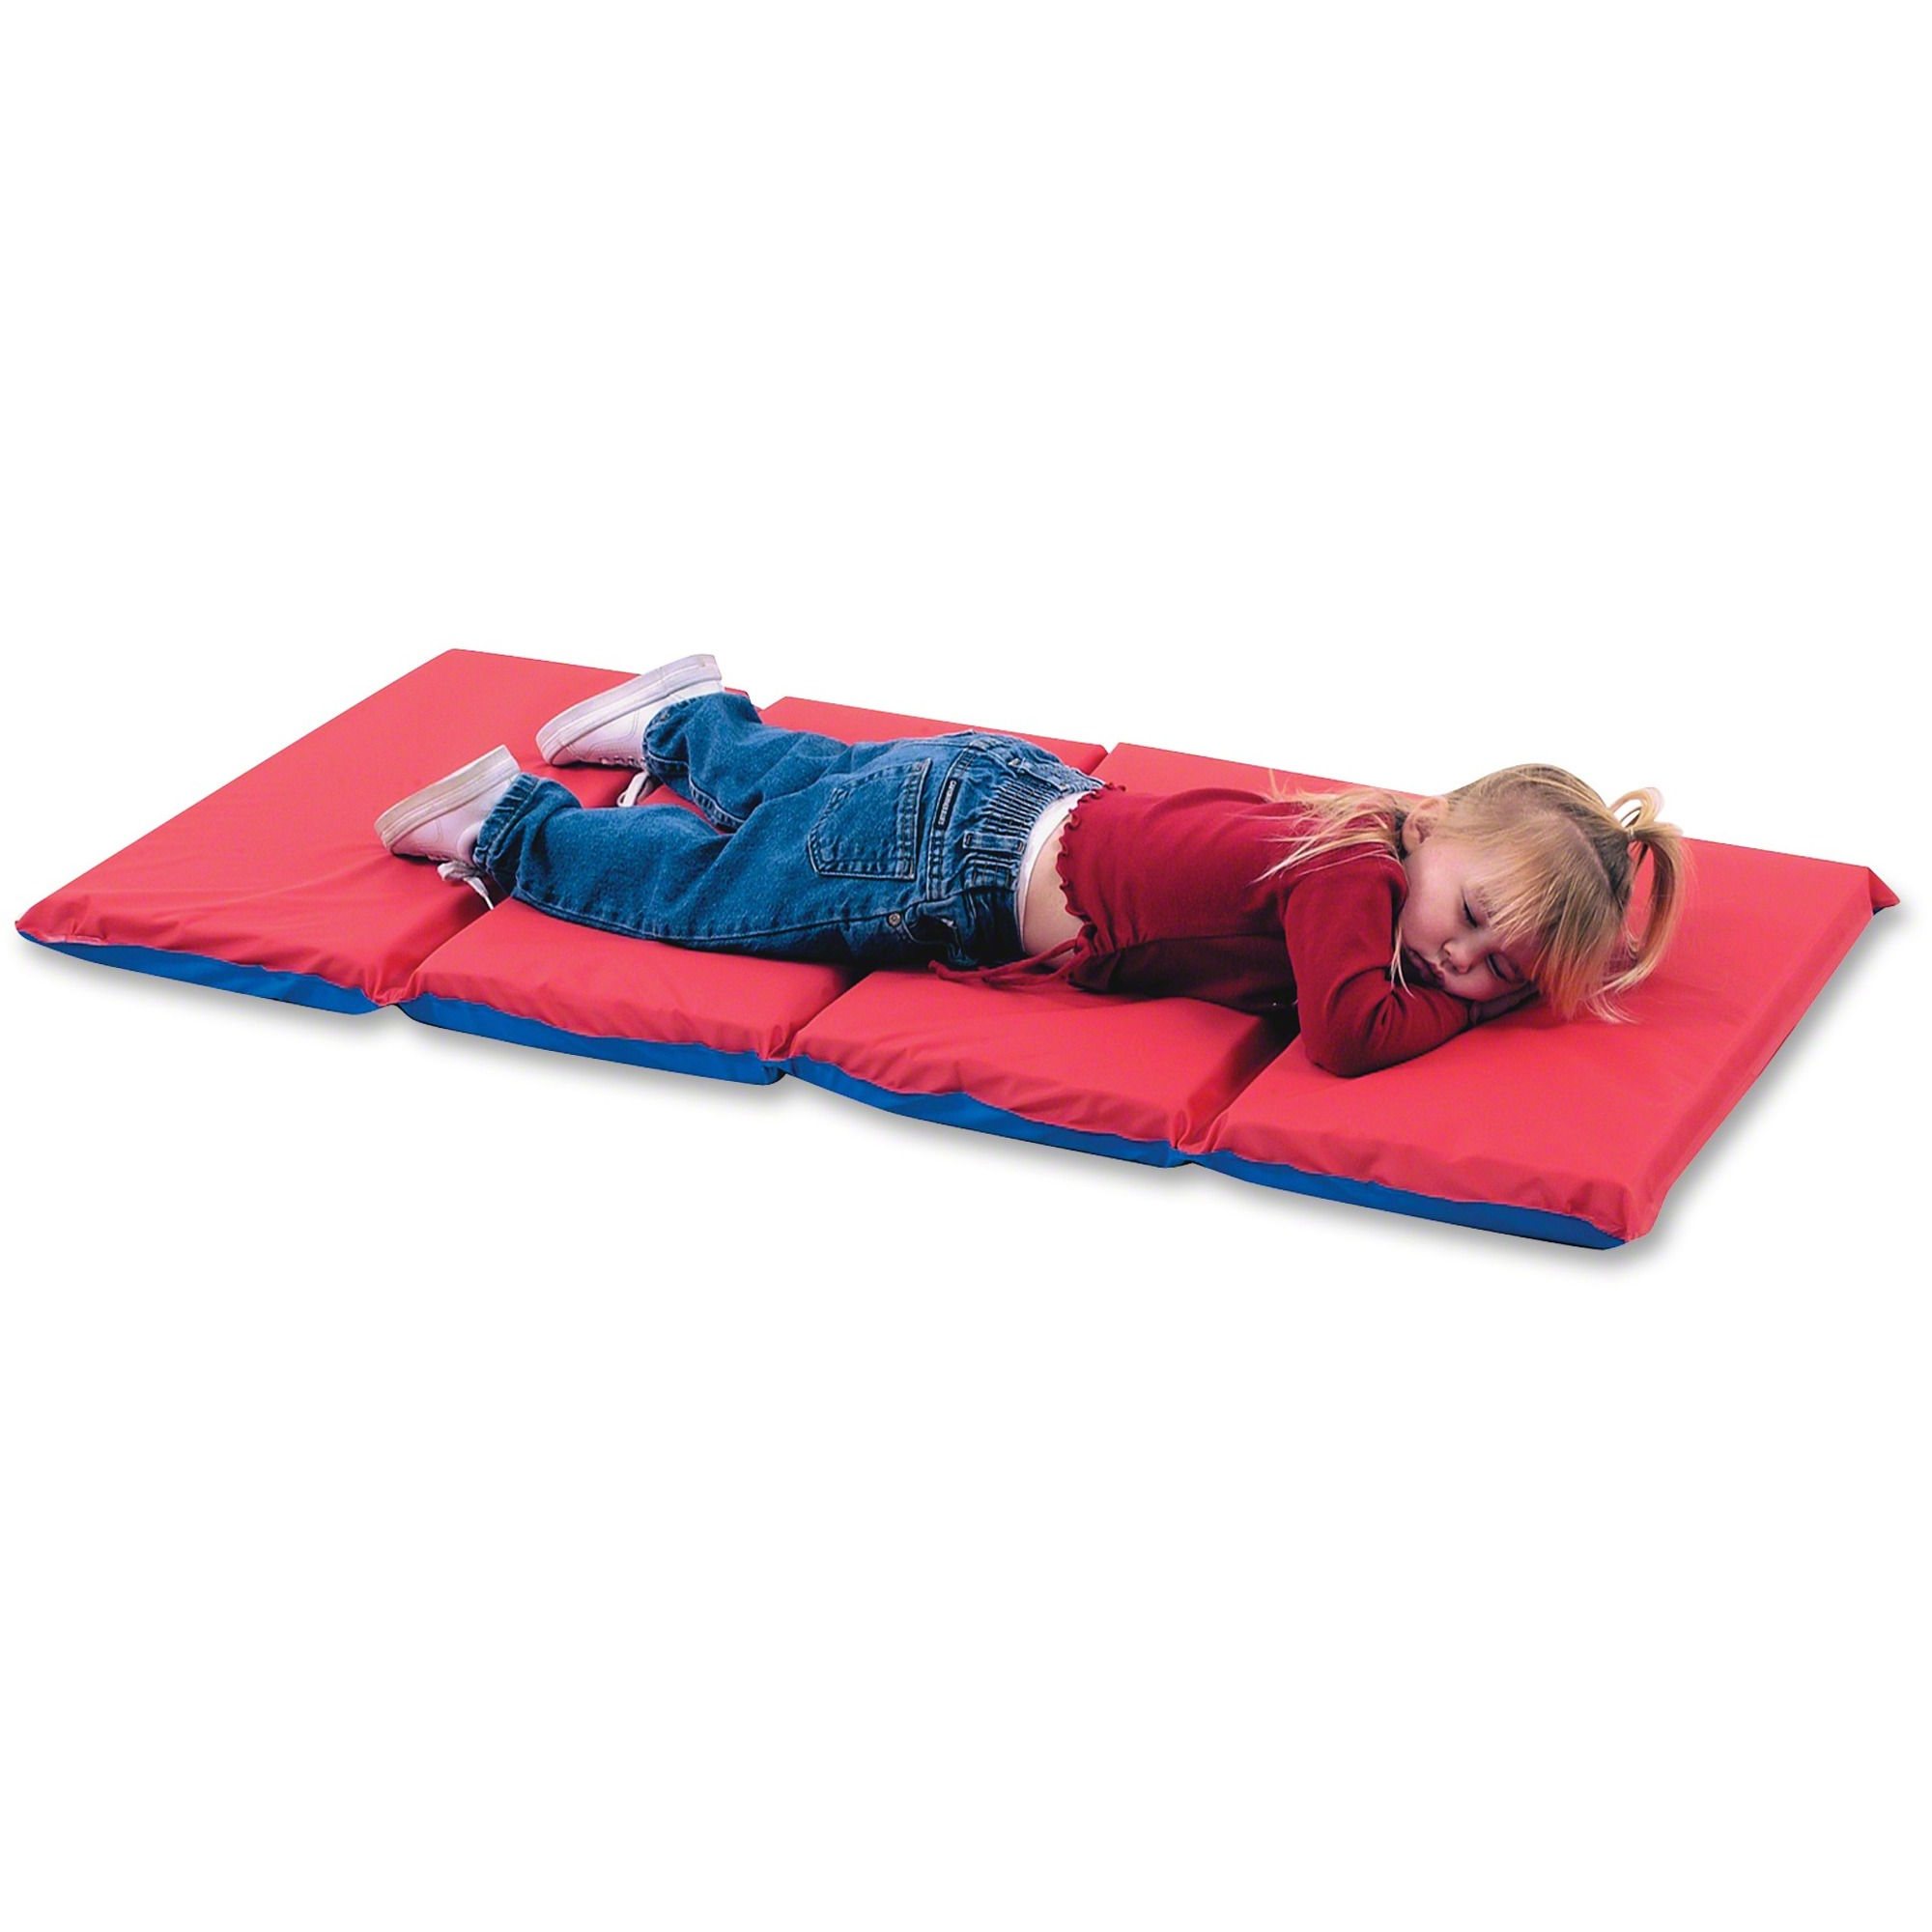 Children's Factory Germ Guard Rest Mat